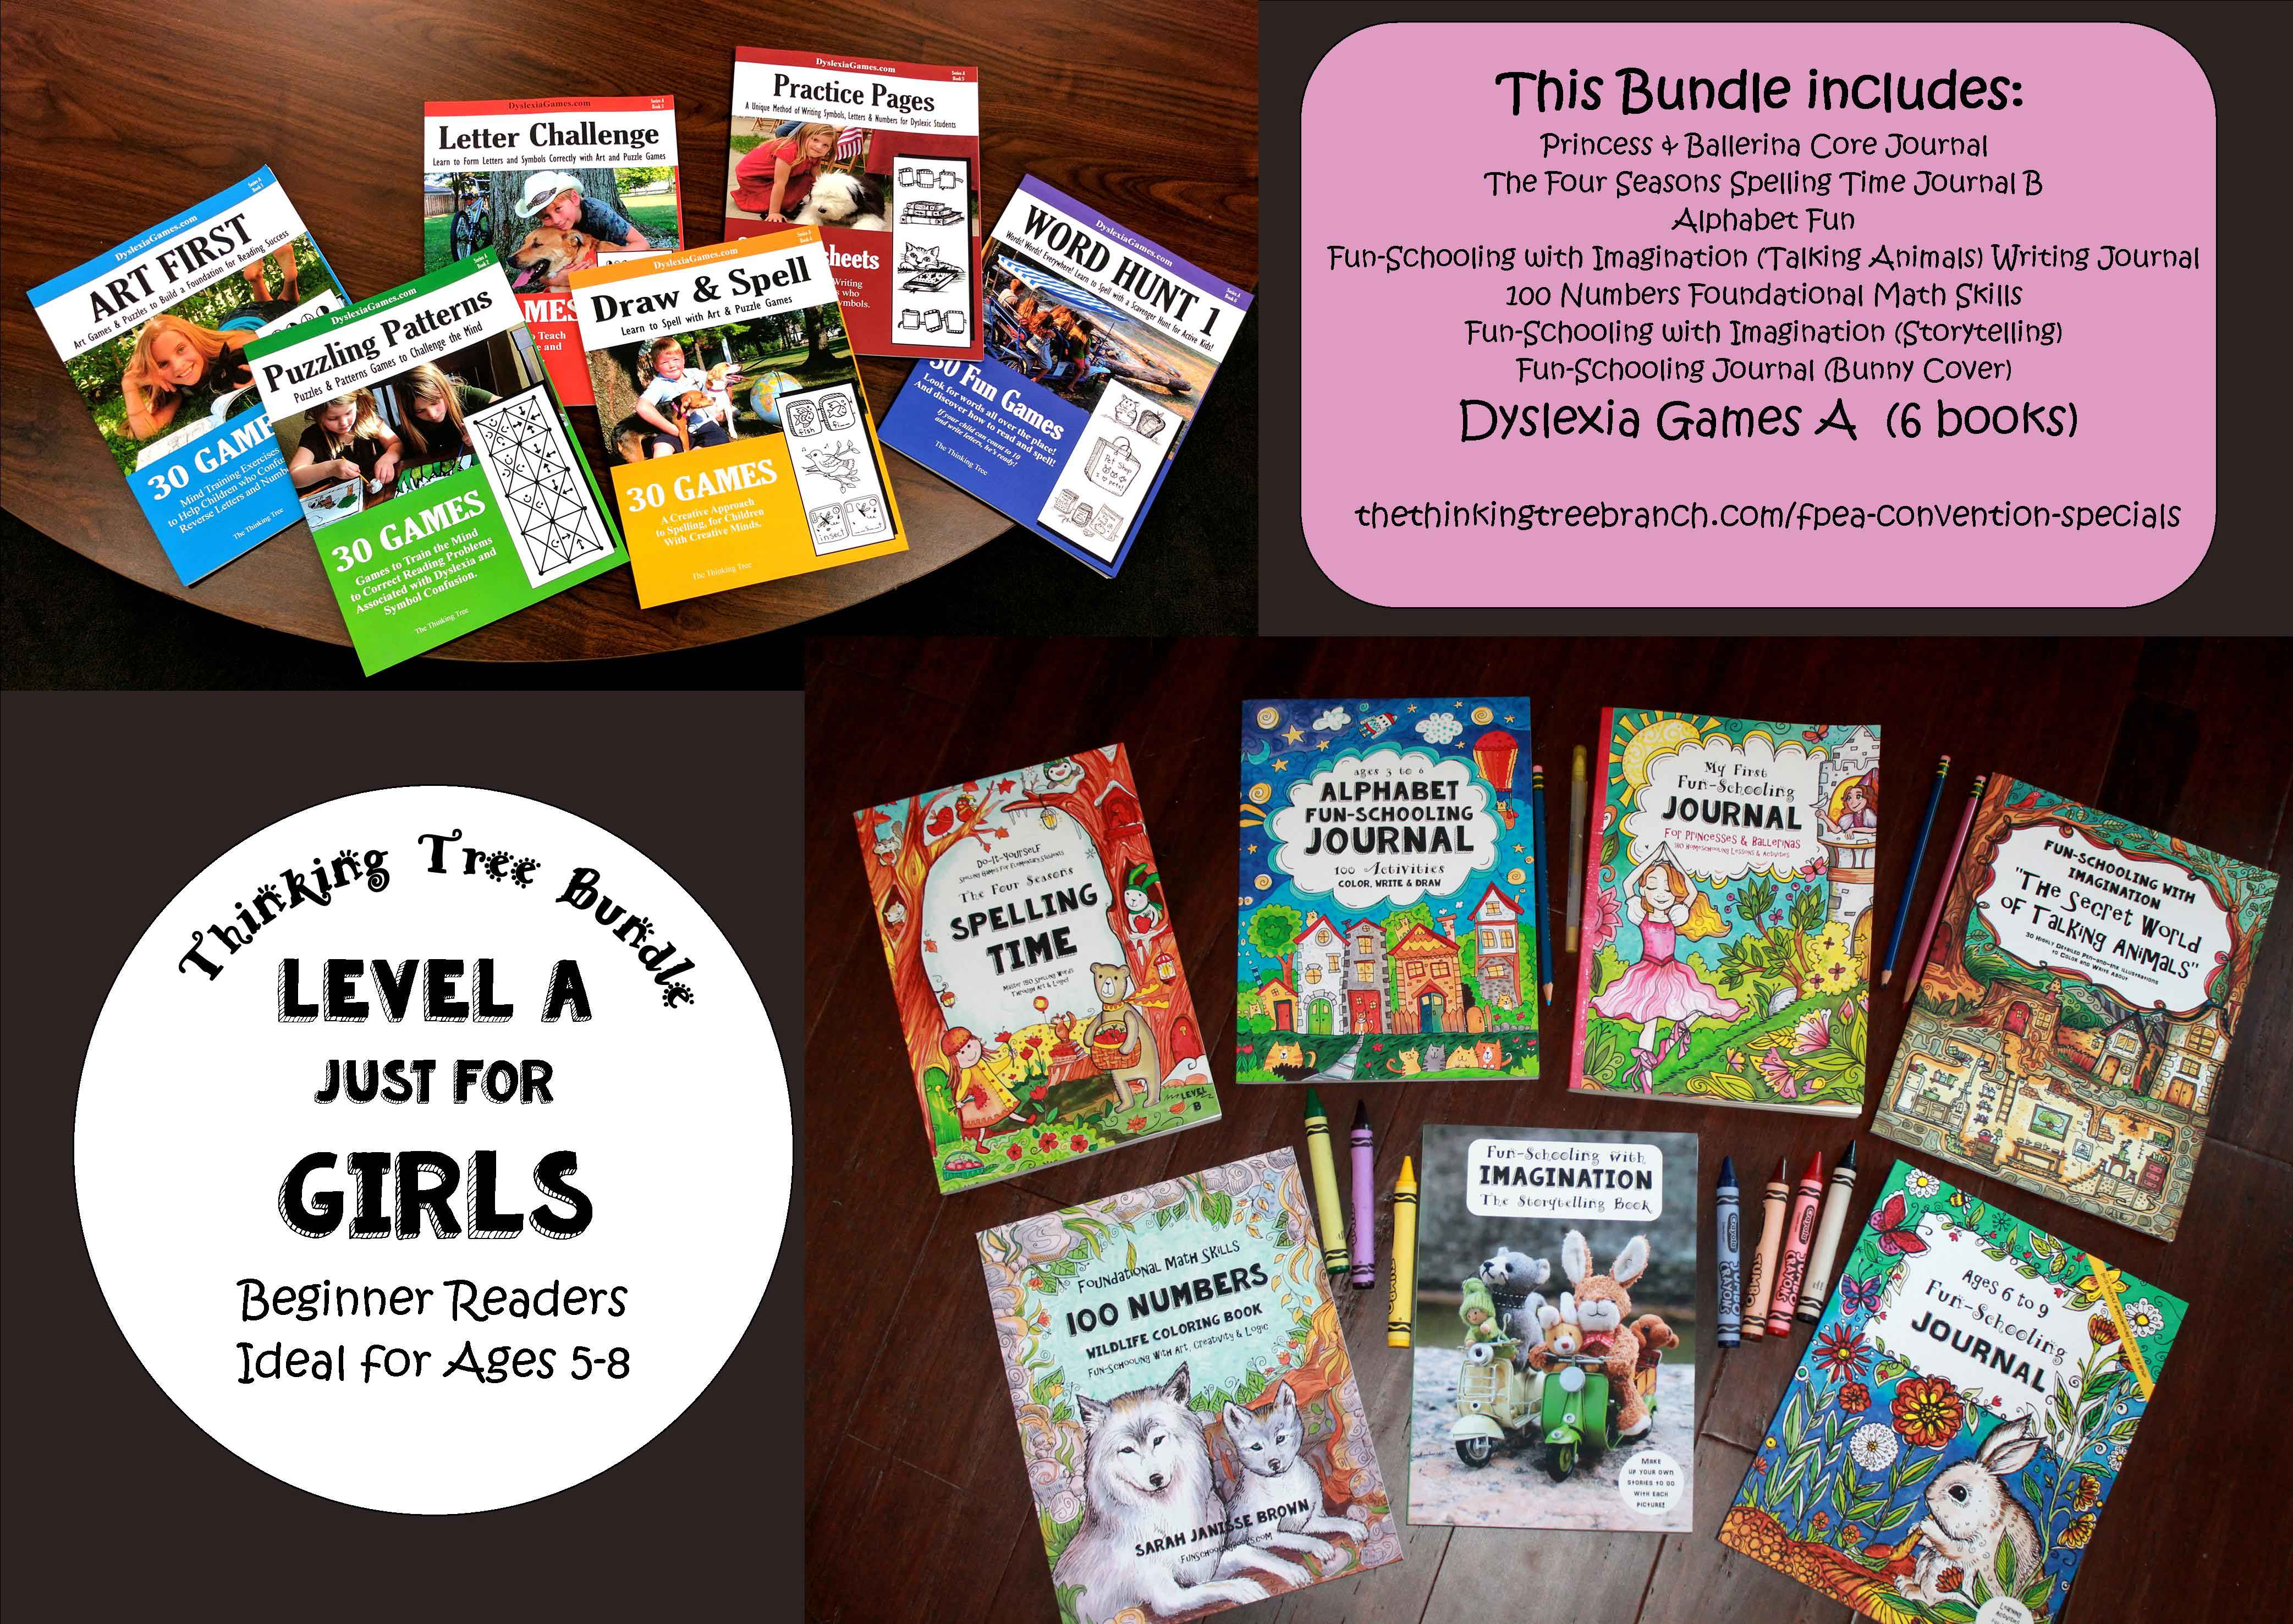 Shop bundles the thinking tree branch struggling reader writer girl bundle or if she doesnt like to read and write this bundle was originally created for an 8 year old girl thinking tree solutioingenieria Choice Image